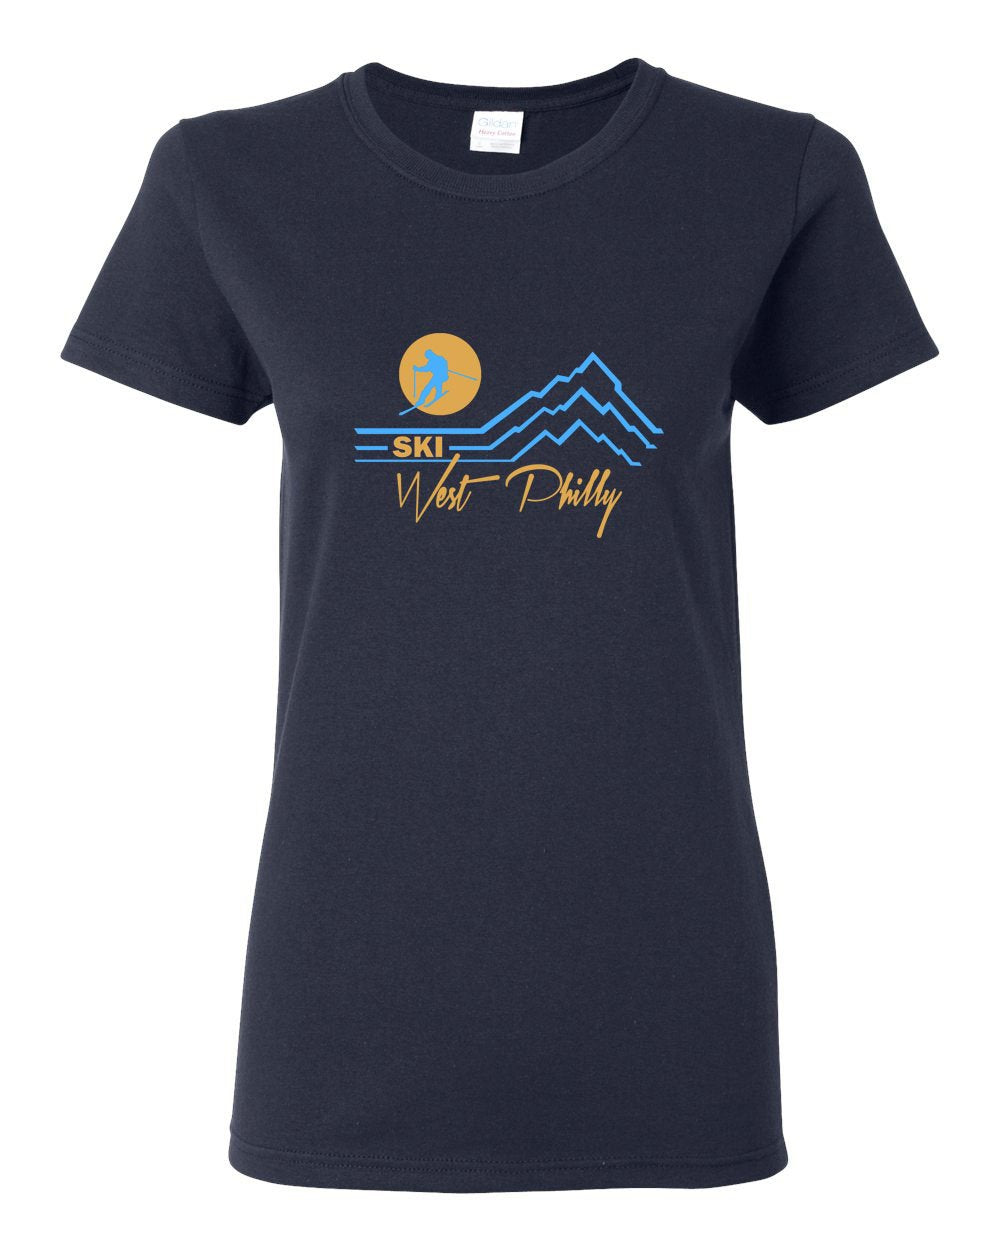 Ski West Philly LADIES Missy-Fit T-Shirt